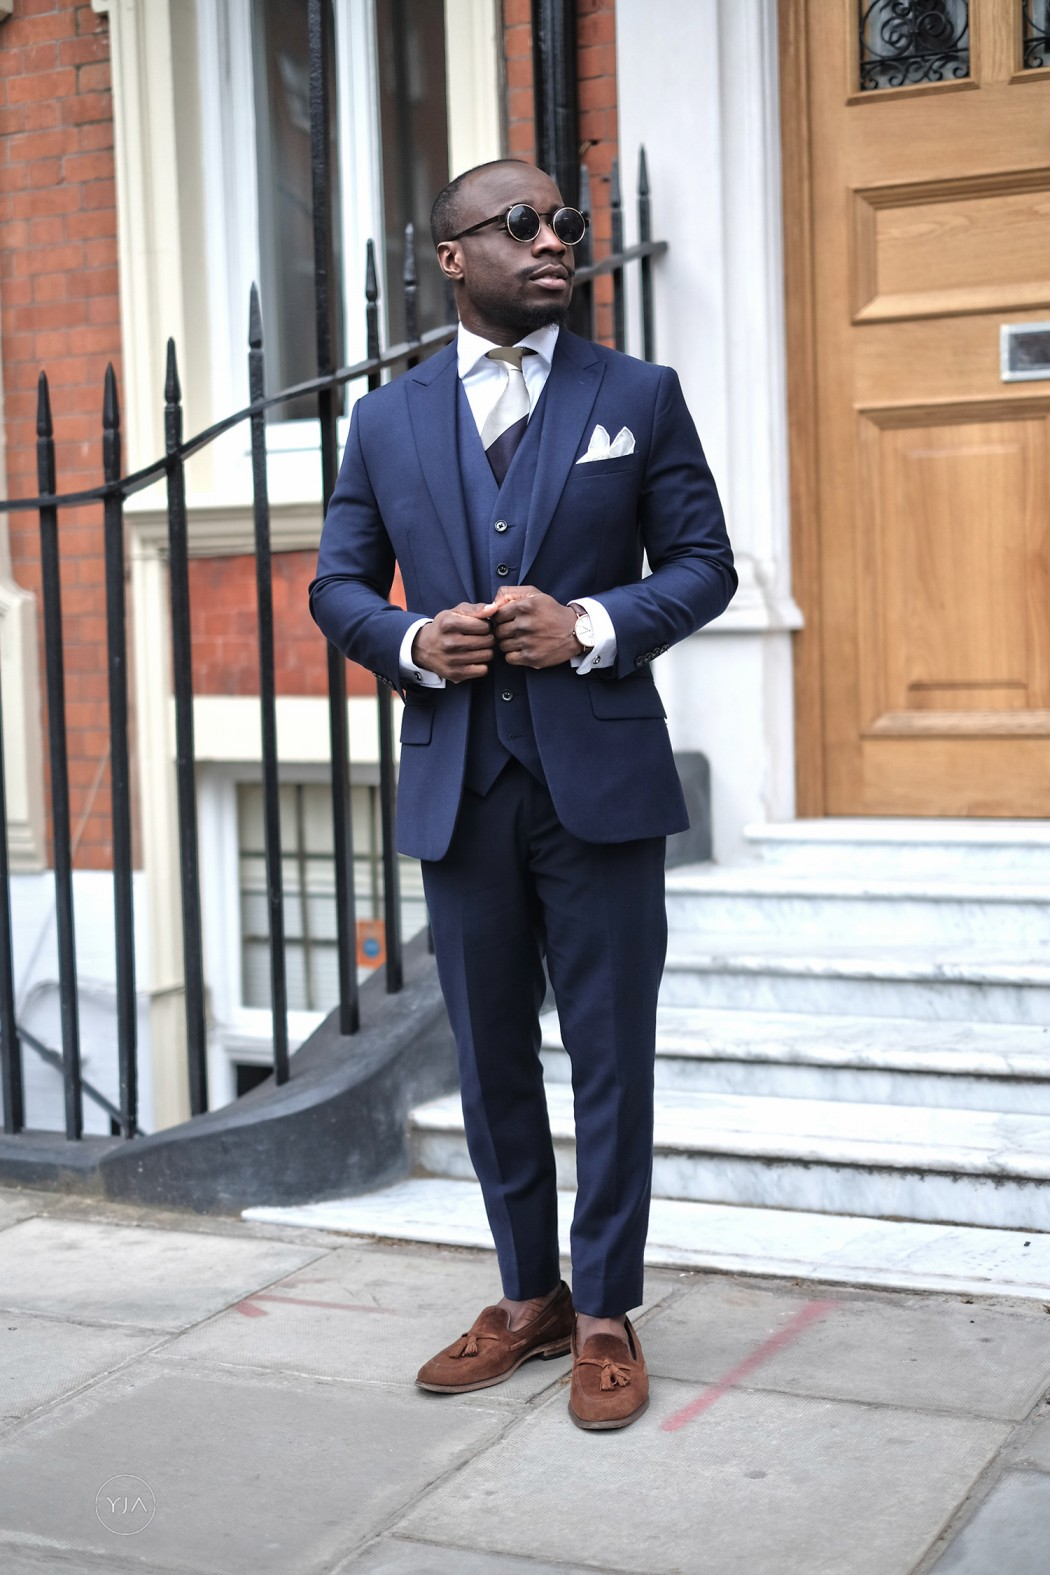 Suits Archives - Yinka Jermaine | Menu0026#39;s Style Guides Advice and Tips